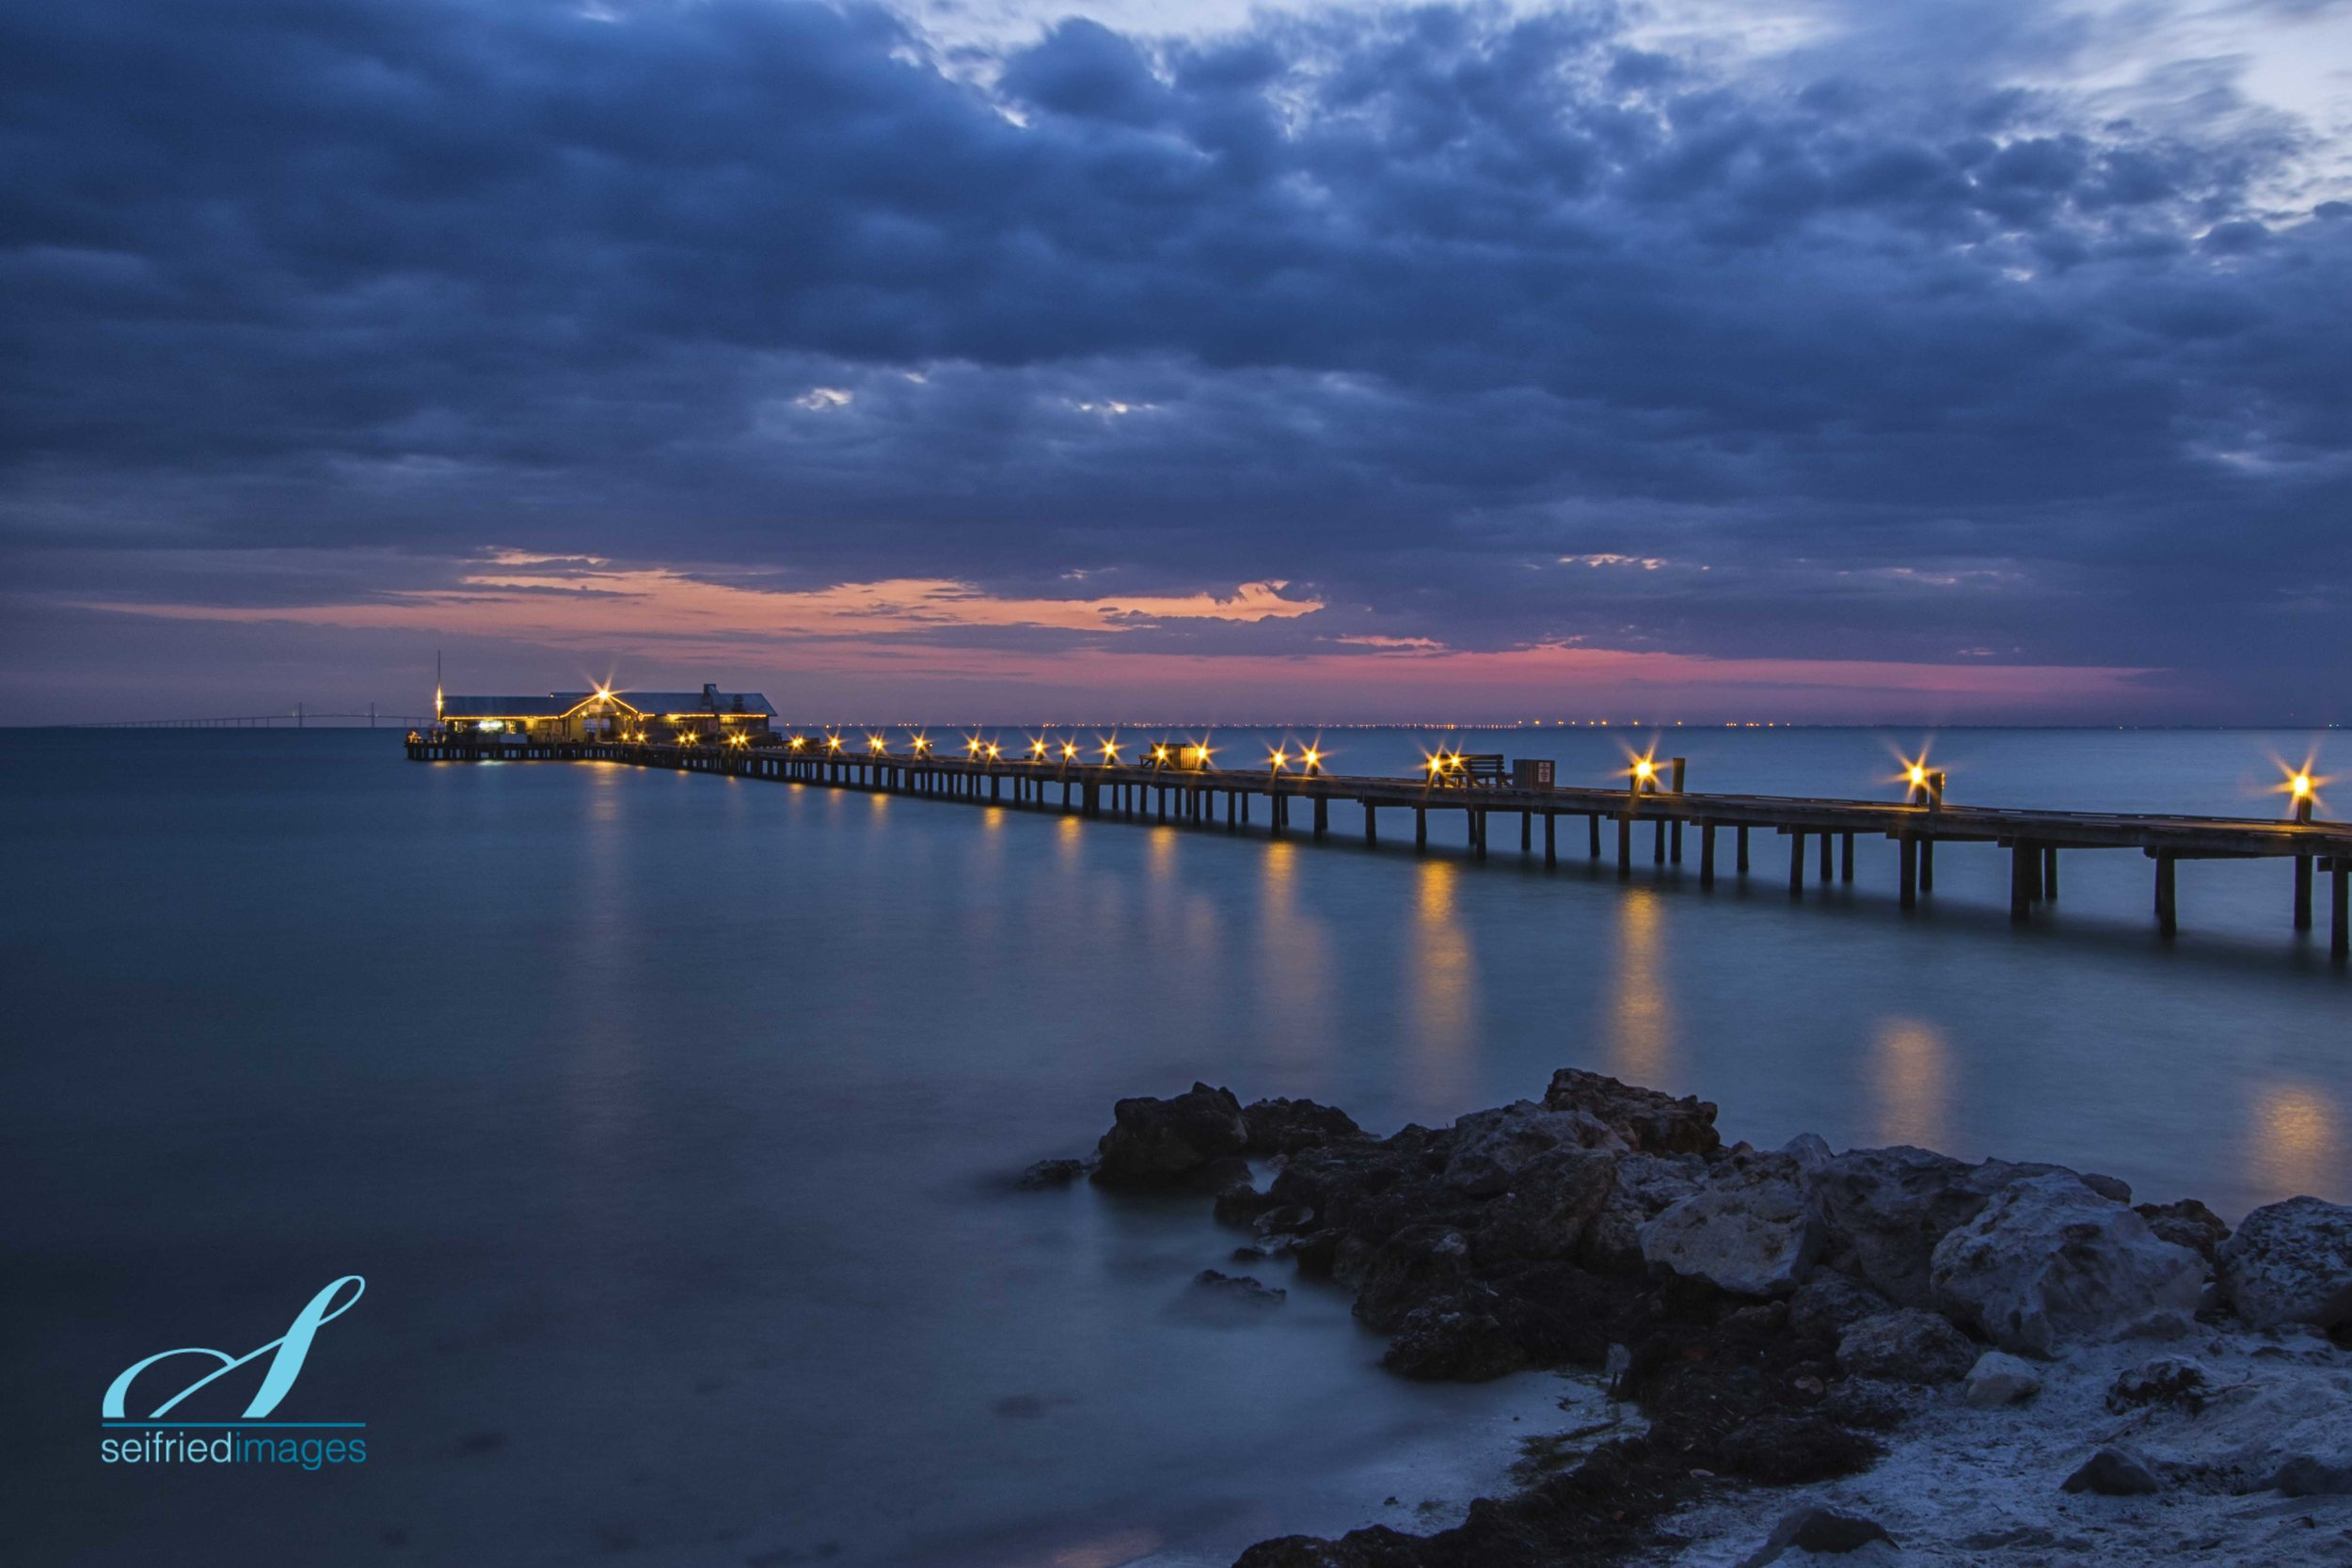 Anna Maria Island's City Pier, approximately 30 minutes before sunrise.